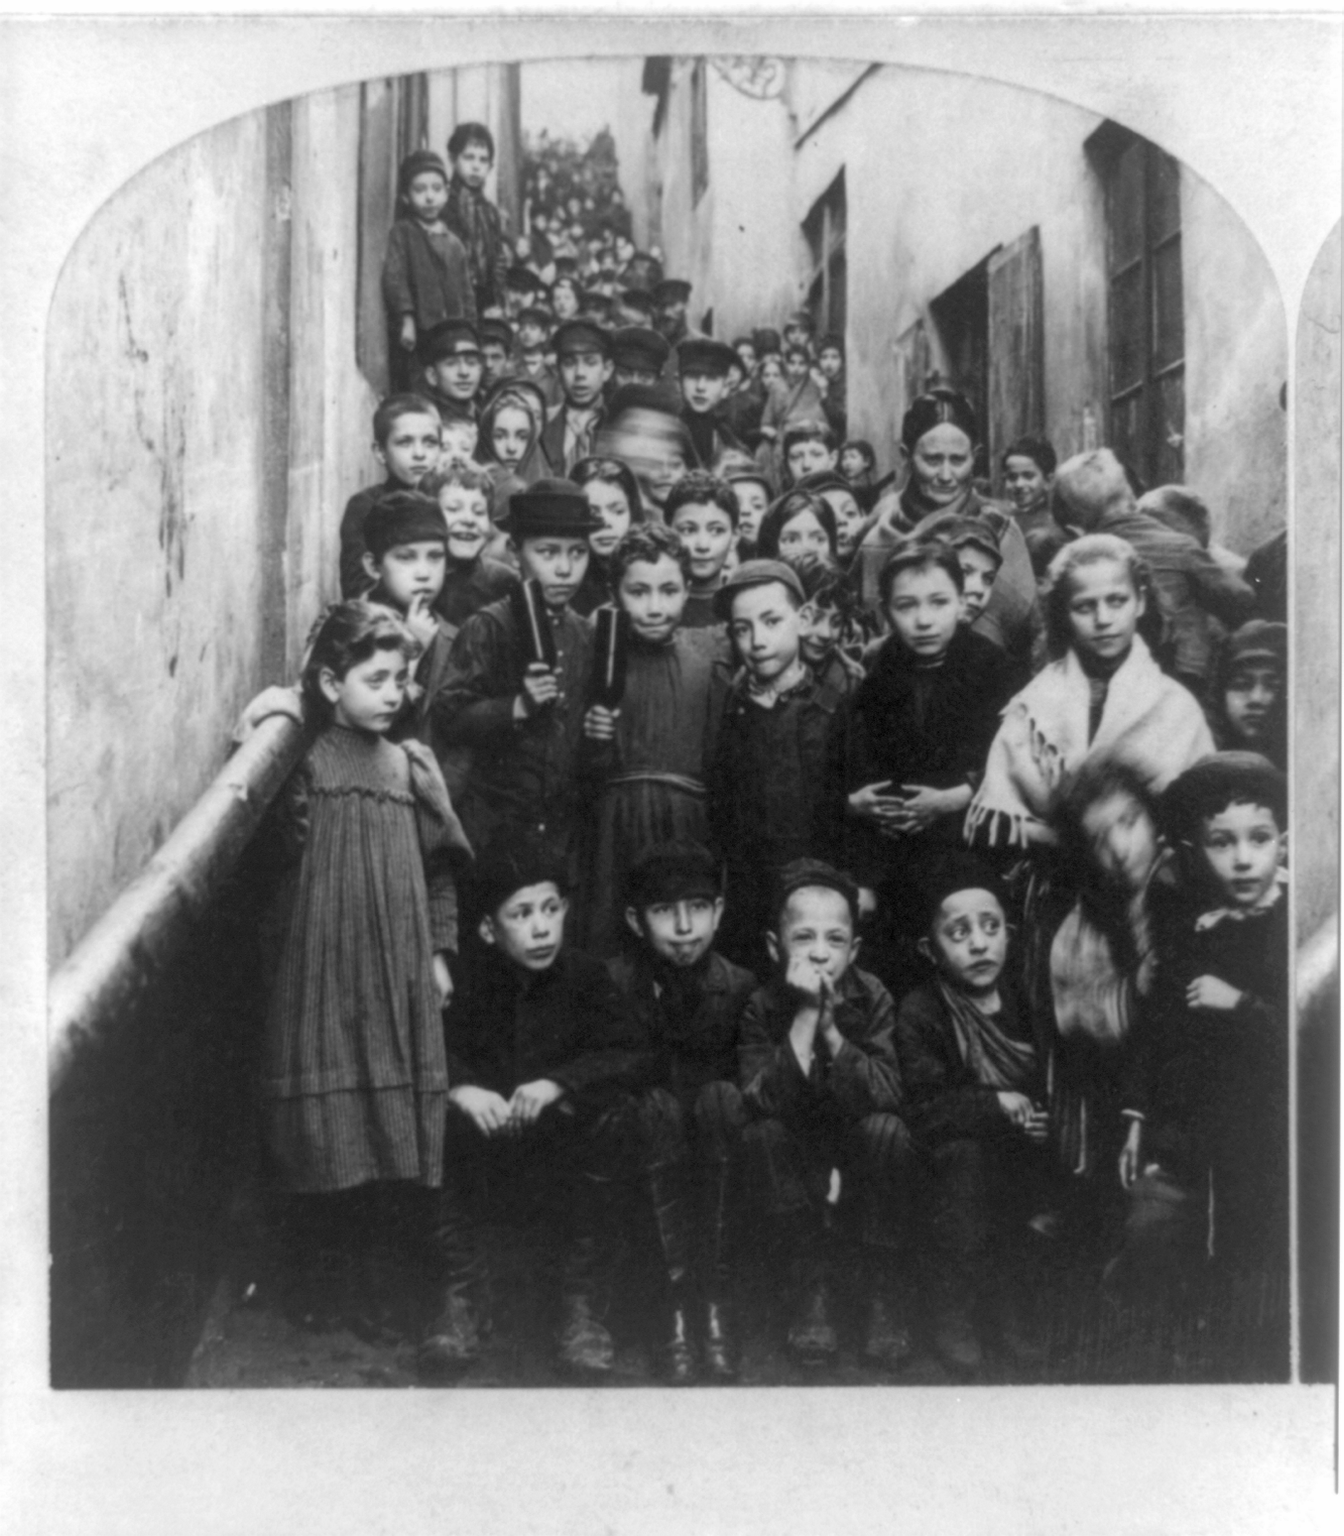 an overview of the history and settlement of jews in russia As the stability and social permissiveness of the settlement improved, more jews arrived in savannah and the the city was home to more than 300 recent immigrants from poland and russia, the vast majority ©2017 goldring/woldenberg institute of southern jewish life.